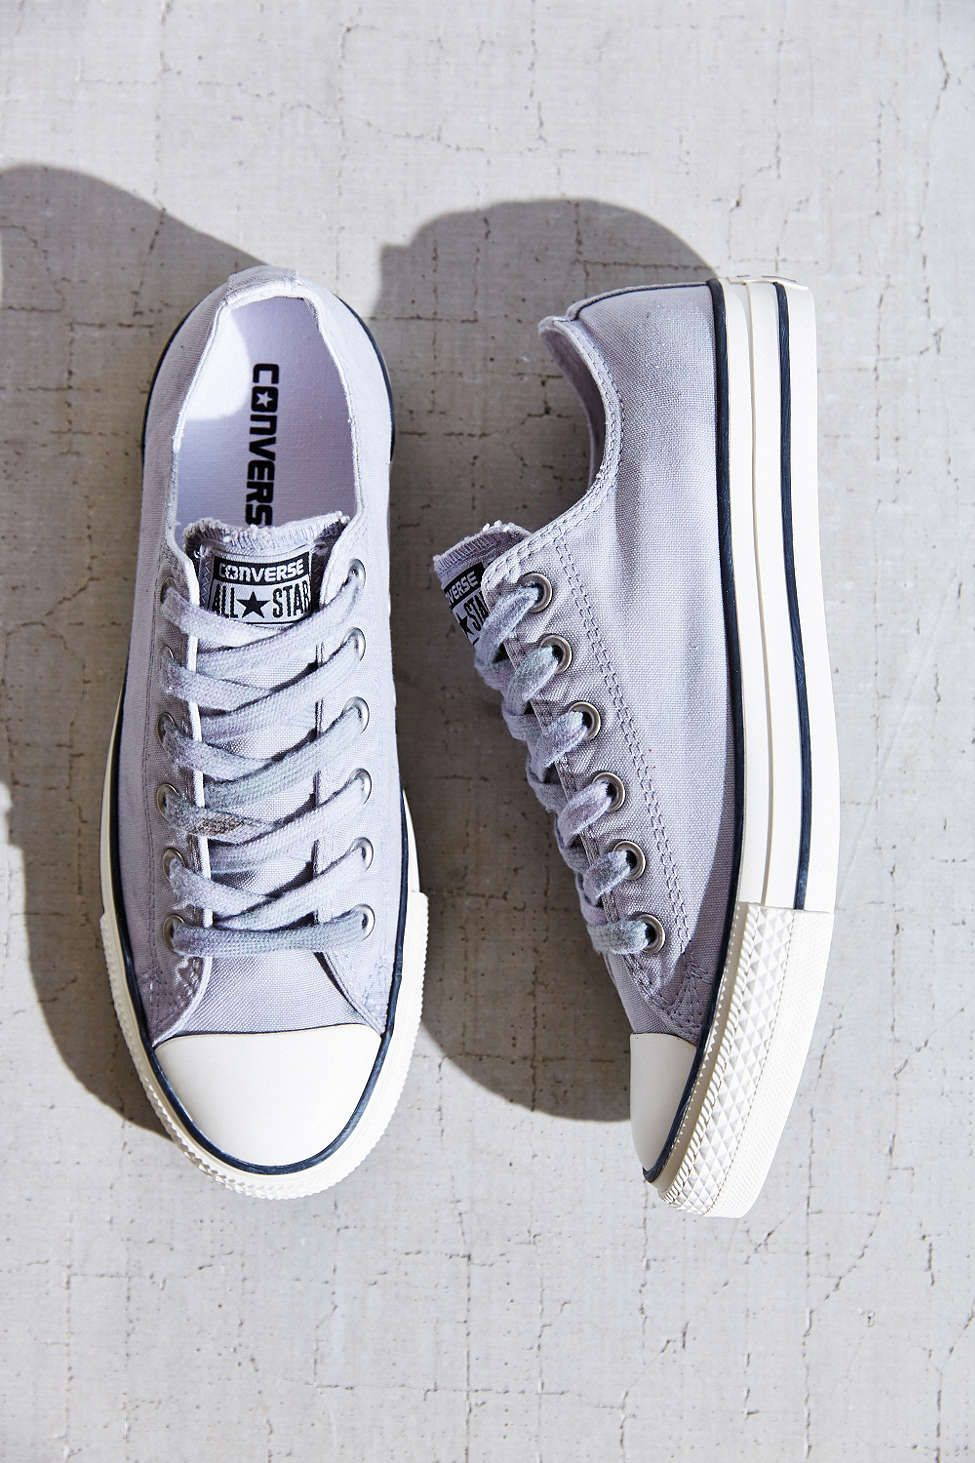 fed0bc56dc57 Converse Chuck Taylor All Star Washed Low-Top Sneaker - Urban Outfitters